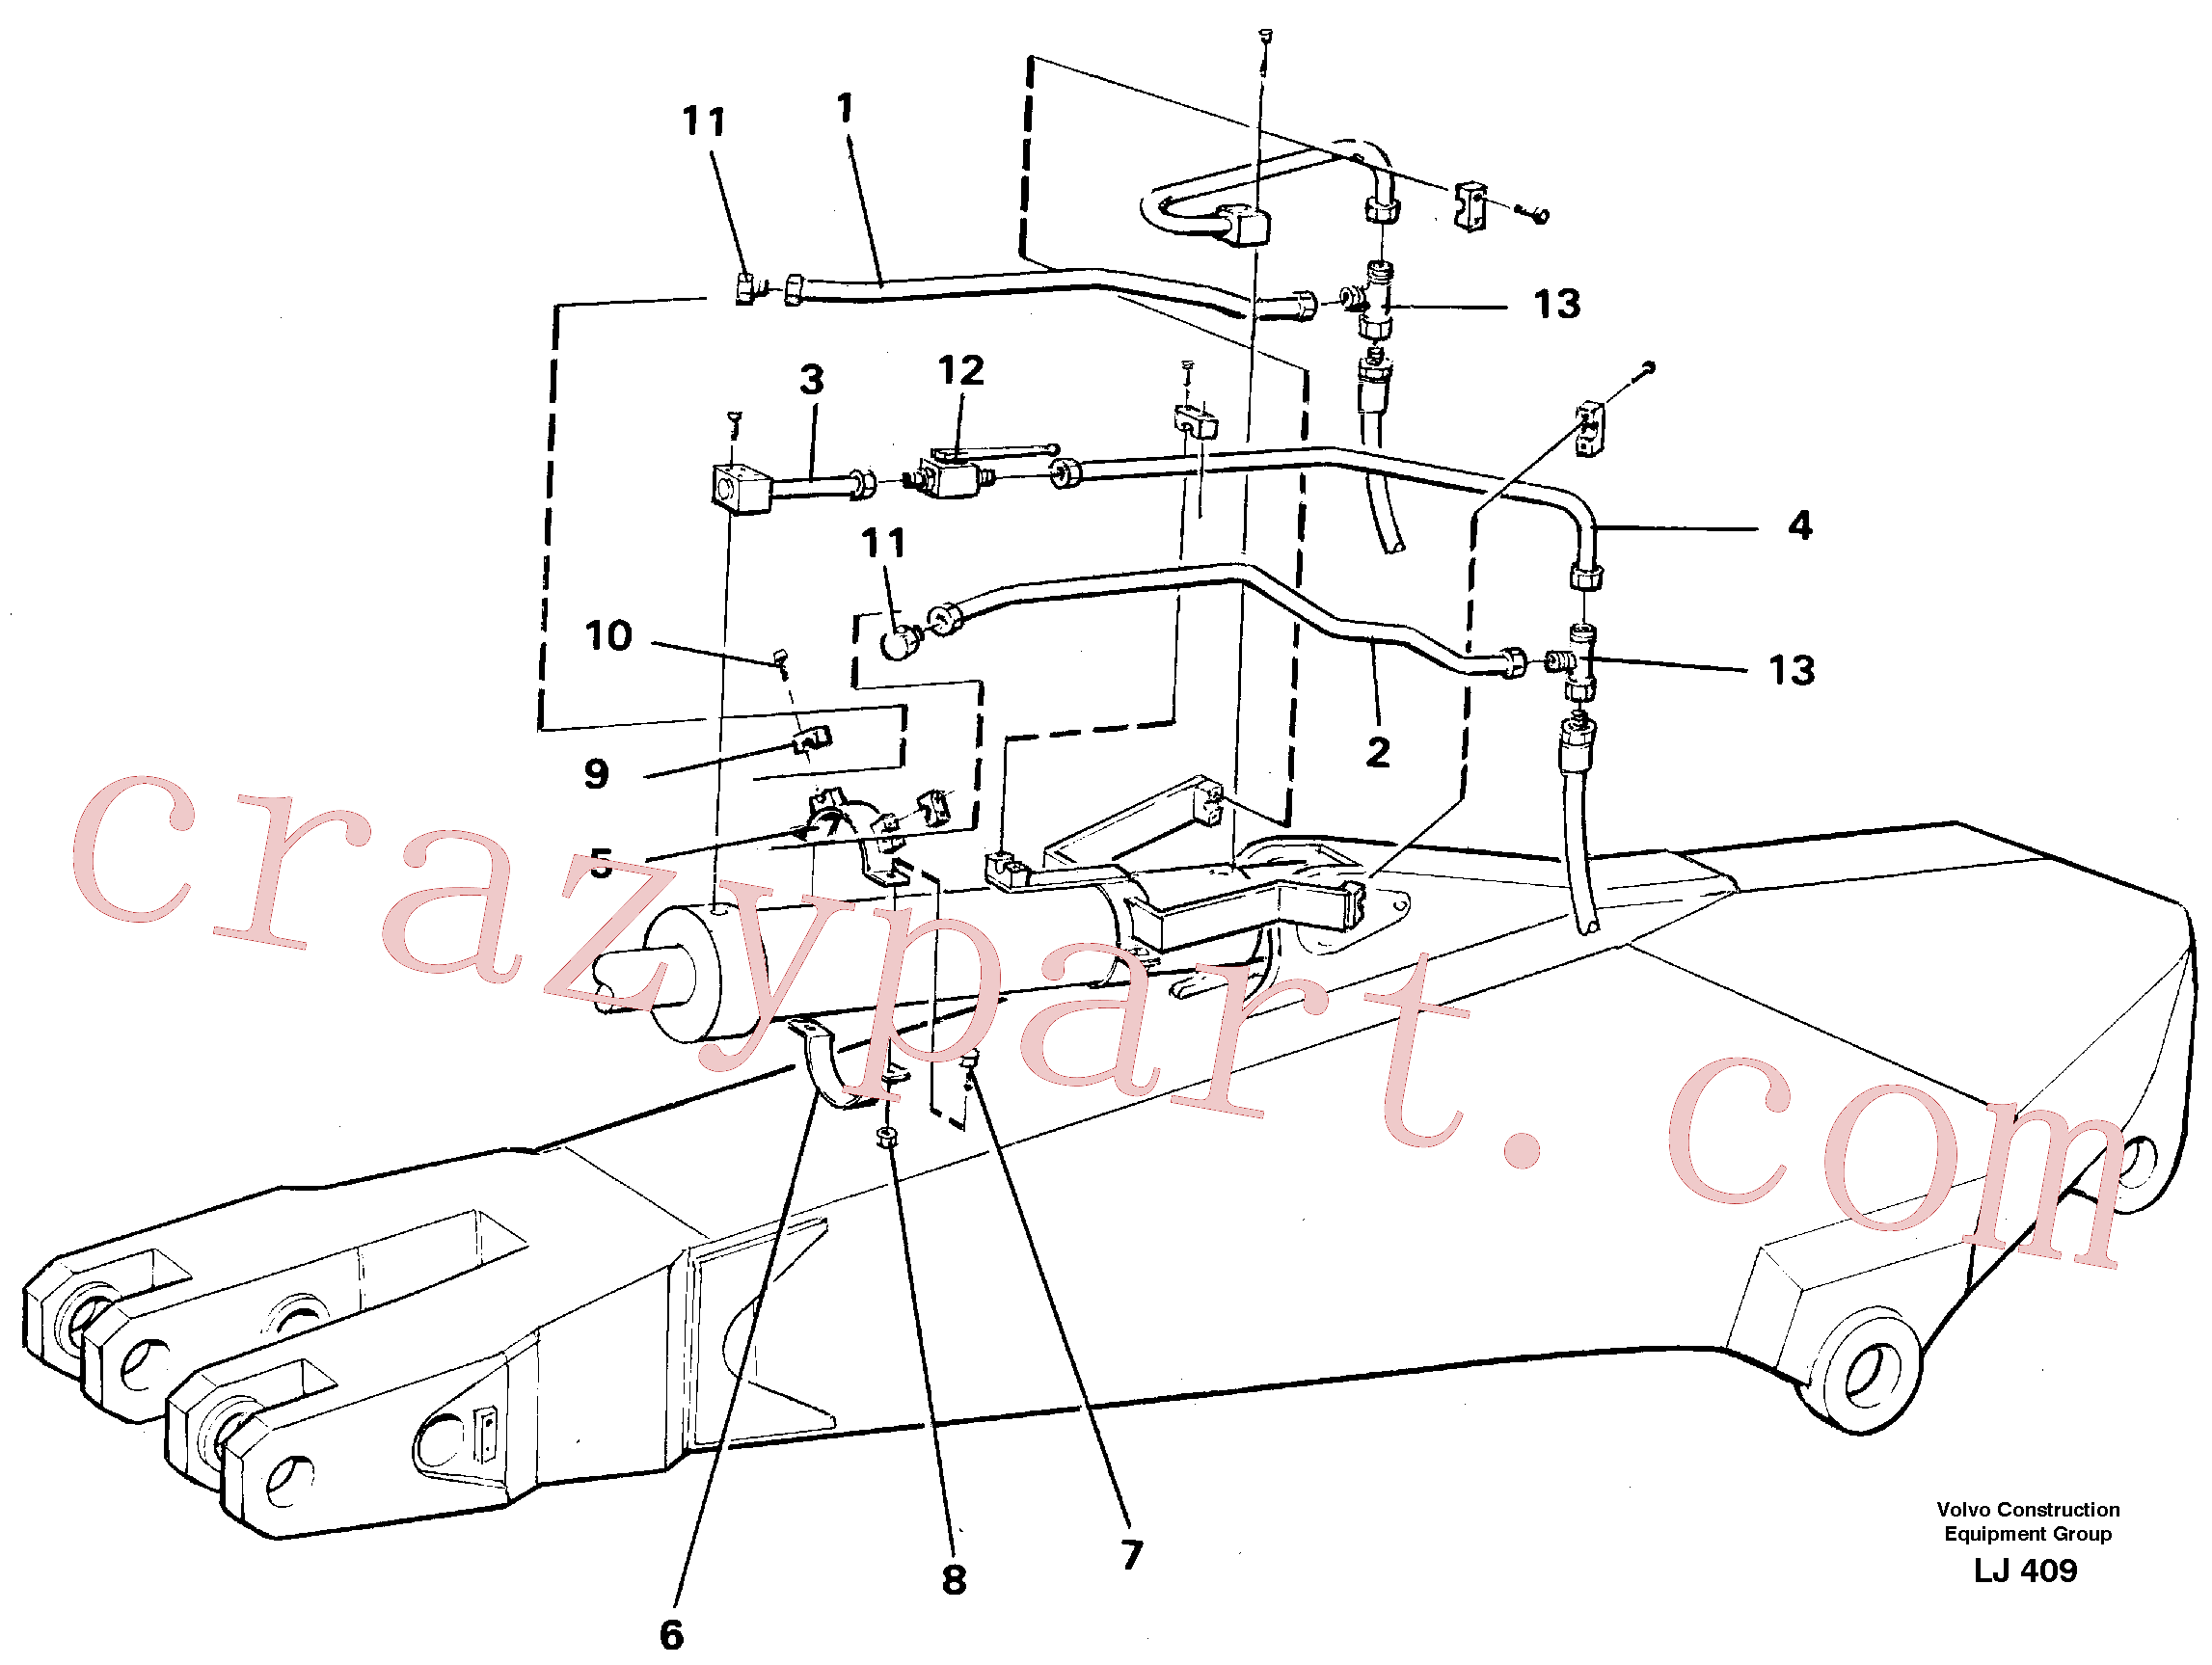 VOE14254935 for Volvo Parallel connected grab hydraulics on dipper arm.(LJ409 assembly)